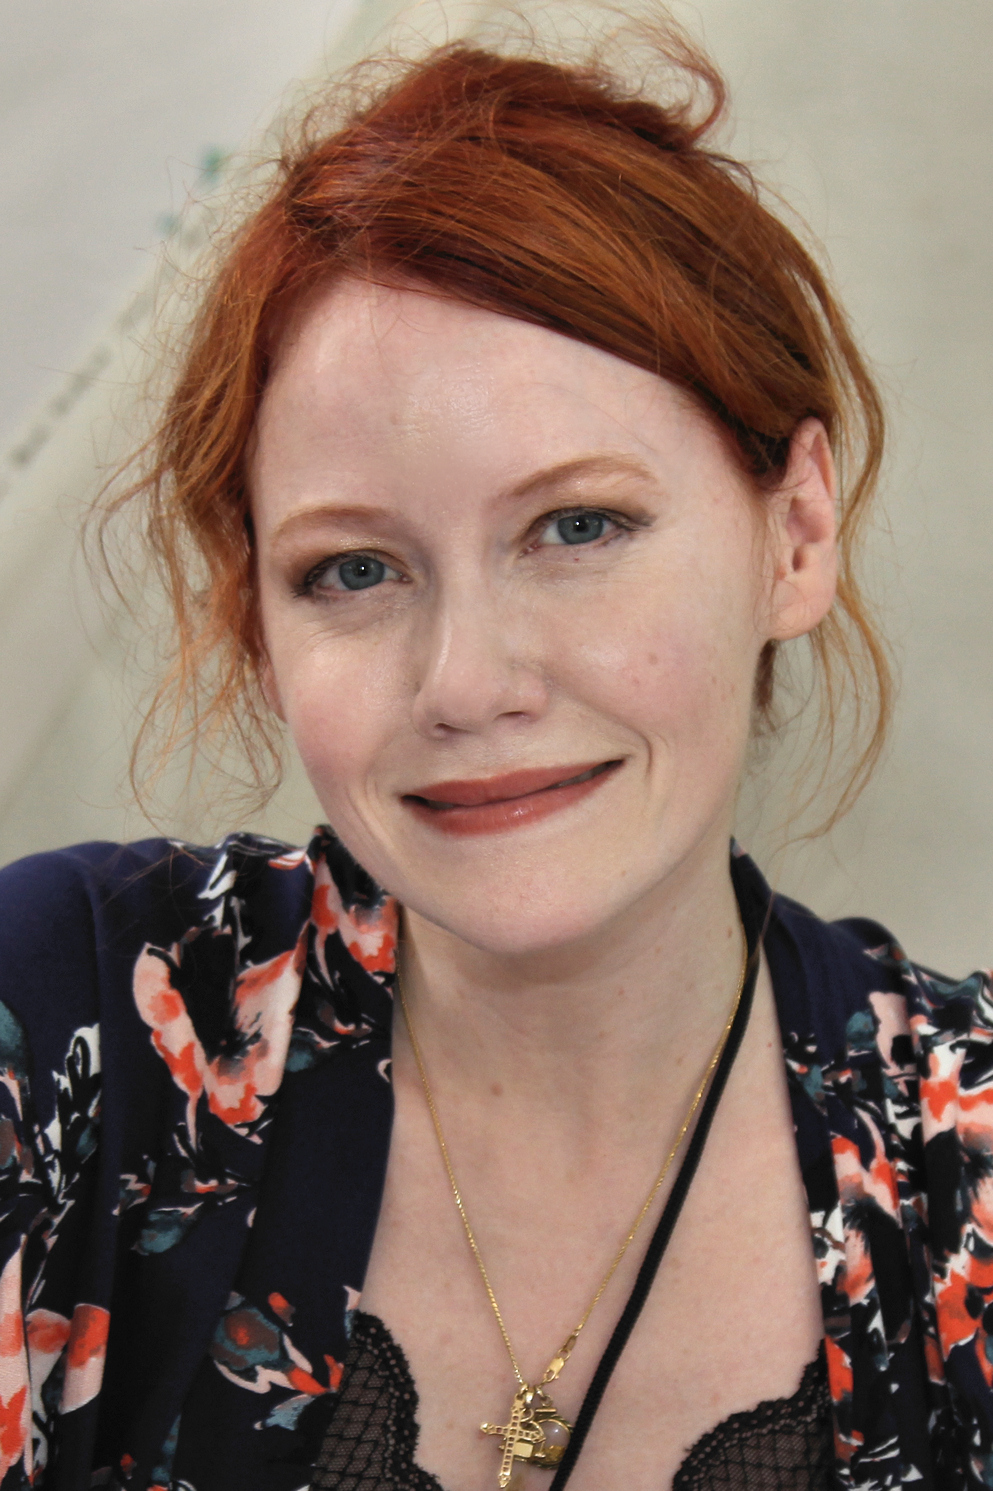 https://upload.wikimedia.org/wikipedia/commons/d/de/Richelle_Mead_2018.jpg